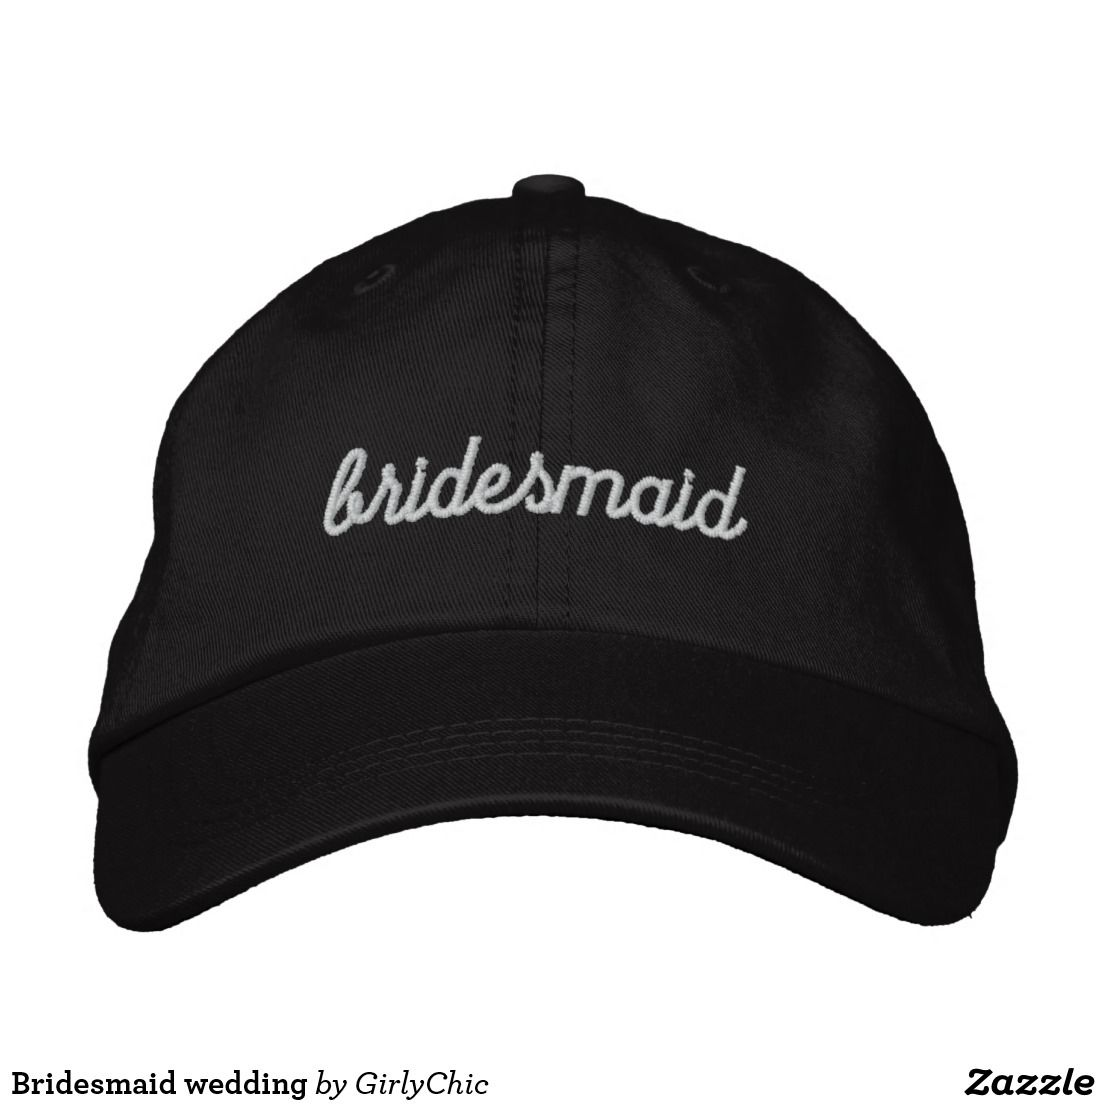 267fd2c0fcb Bridesmaid wedding embroidered baseball cap. Bridesmaid wedding embroidered  baseball cap Baseball Hats